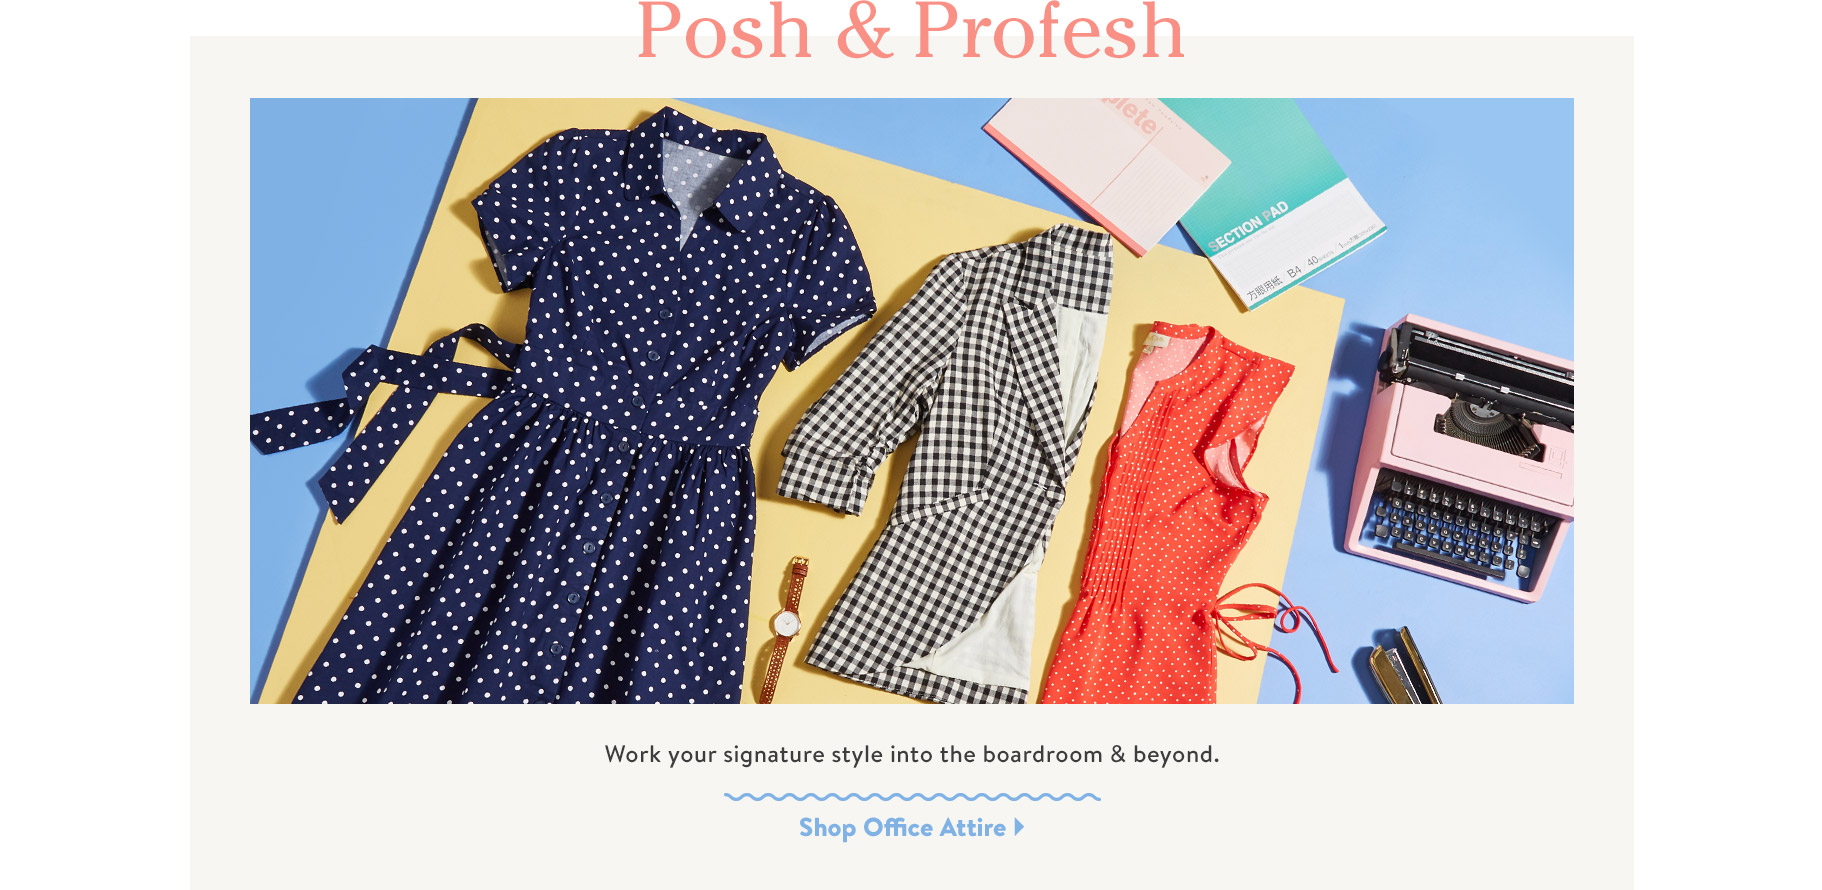 Posh & Profesh. Work your signature style into the boardroom & beyond. Shop Office Attire.